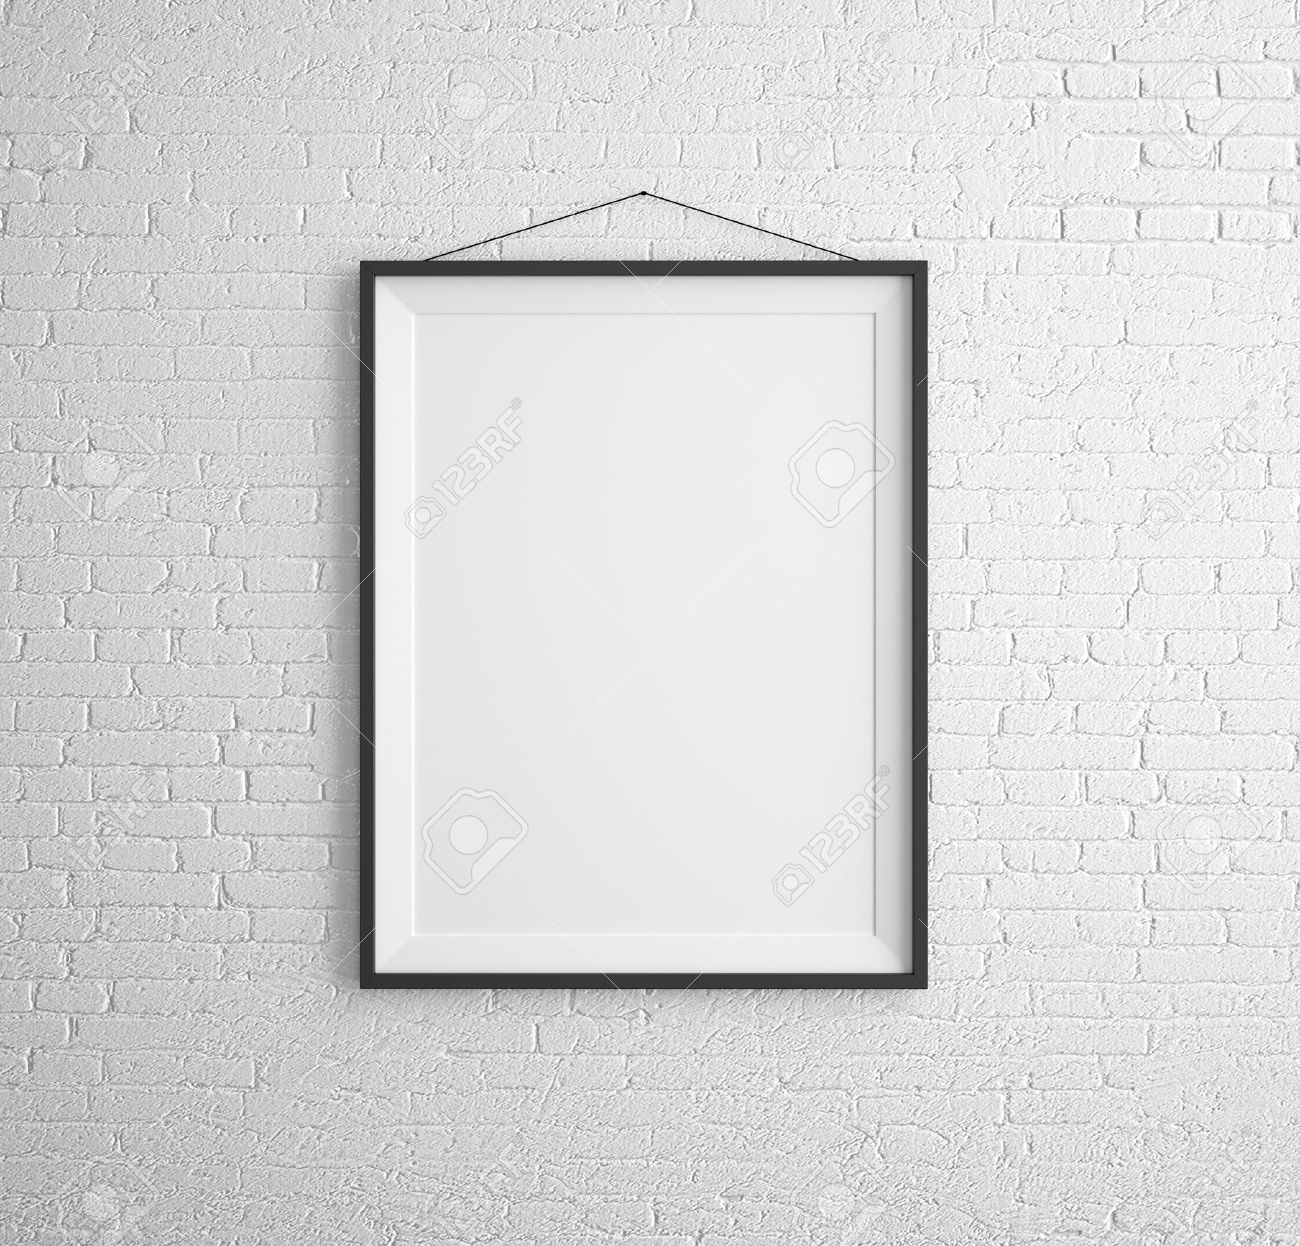 Black Frames On Brick Wall Stock Photo, Picture And Royalty Free ...